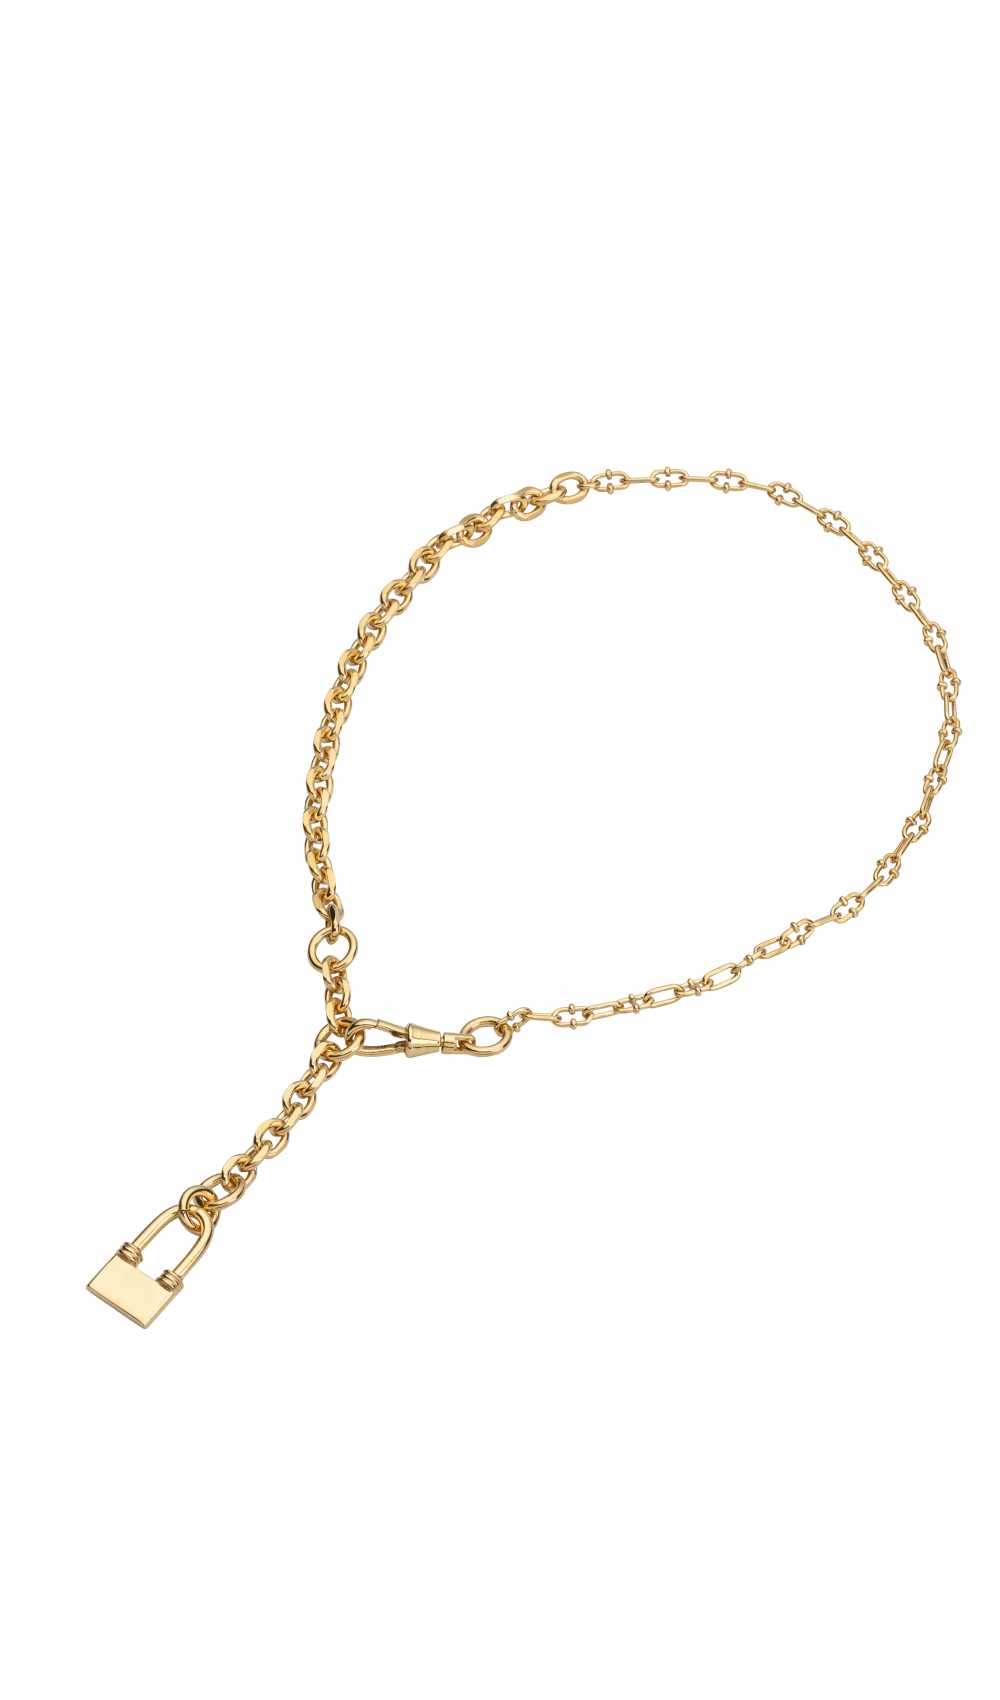 ingent necklace in gold from Sabrina dehoff